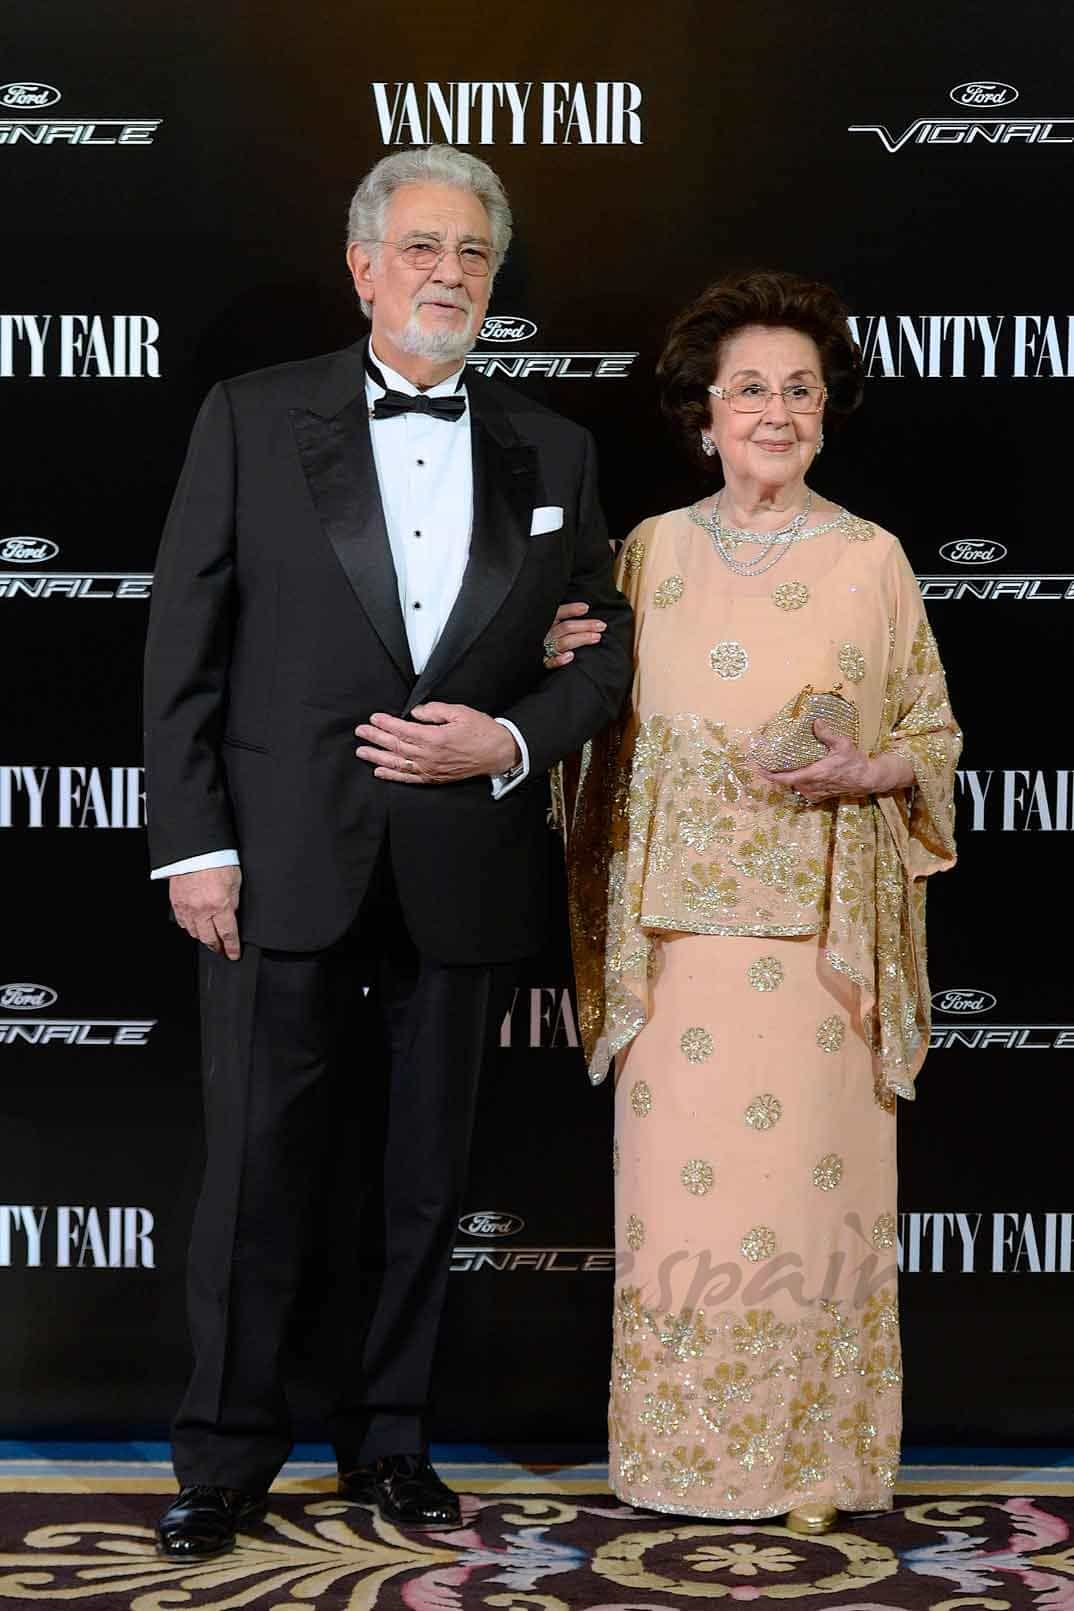 placido domingo premio vanity fair